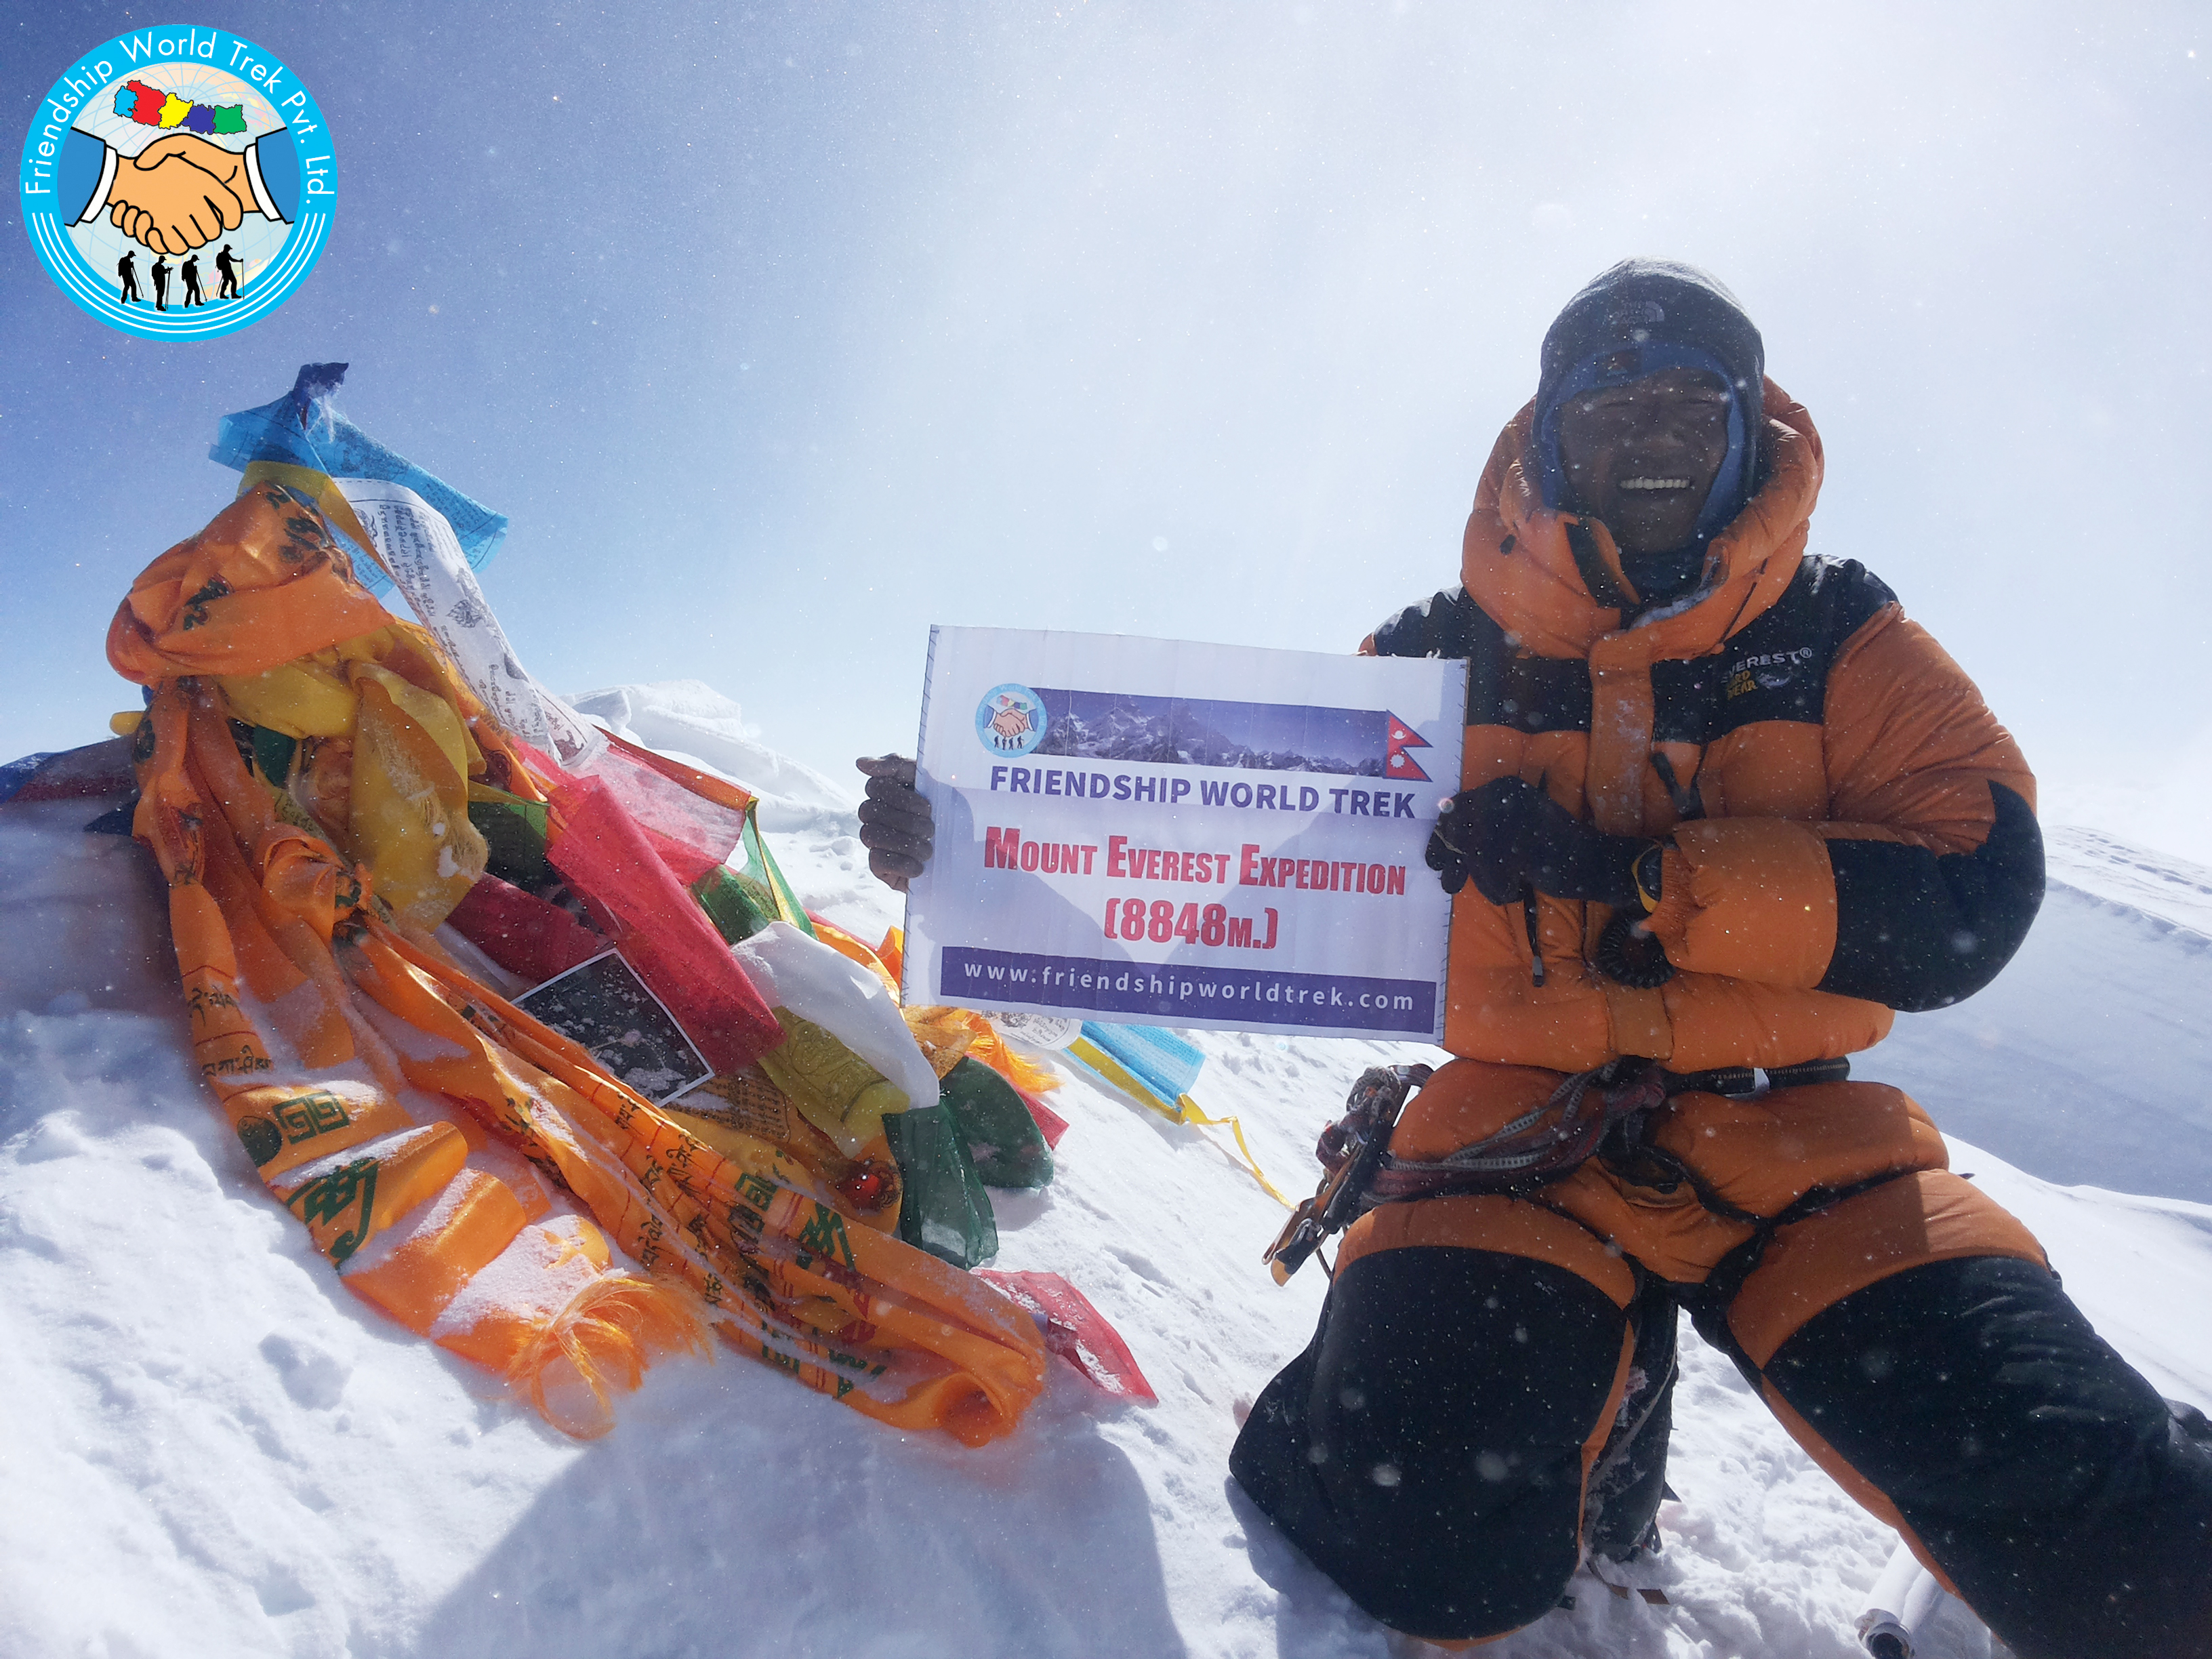 Mount Everest Summit 8848M